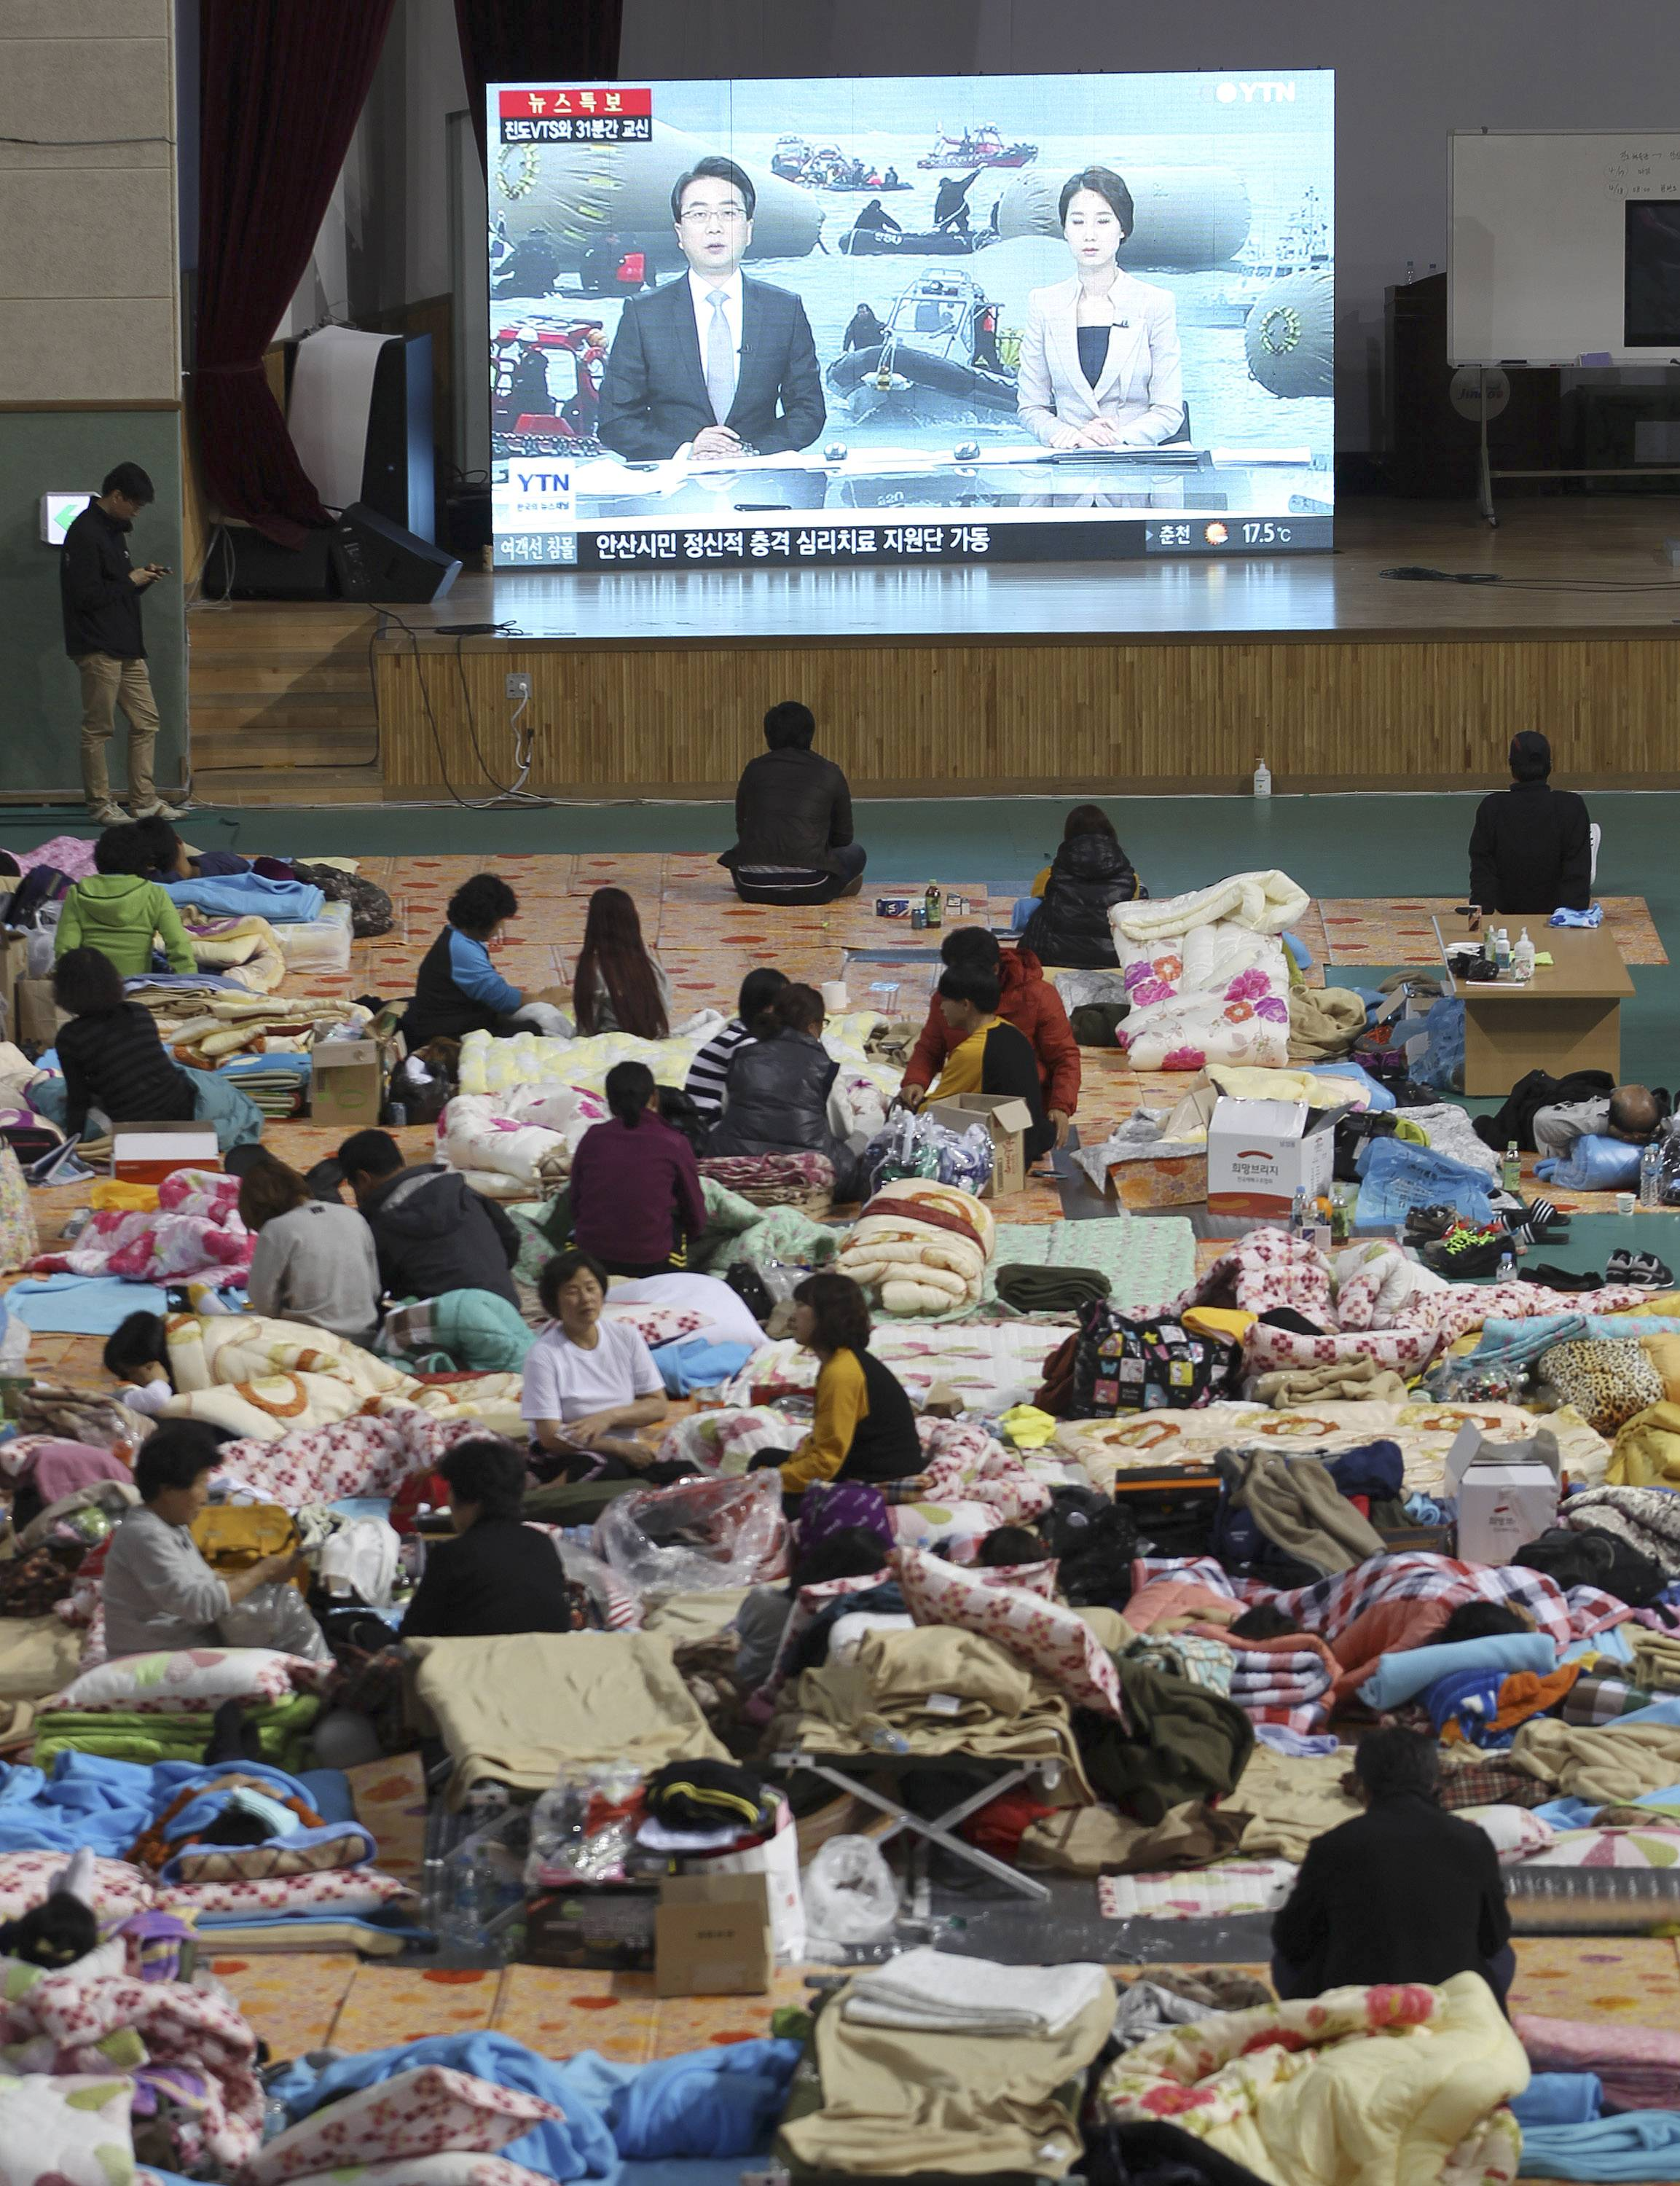 Relatives of missing passengers, waiting in a school gymnasium in Jindo, South Korea, watch a TV news program reporting government's rescue operations Sunday. After more than three